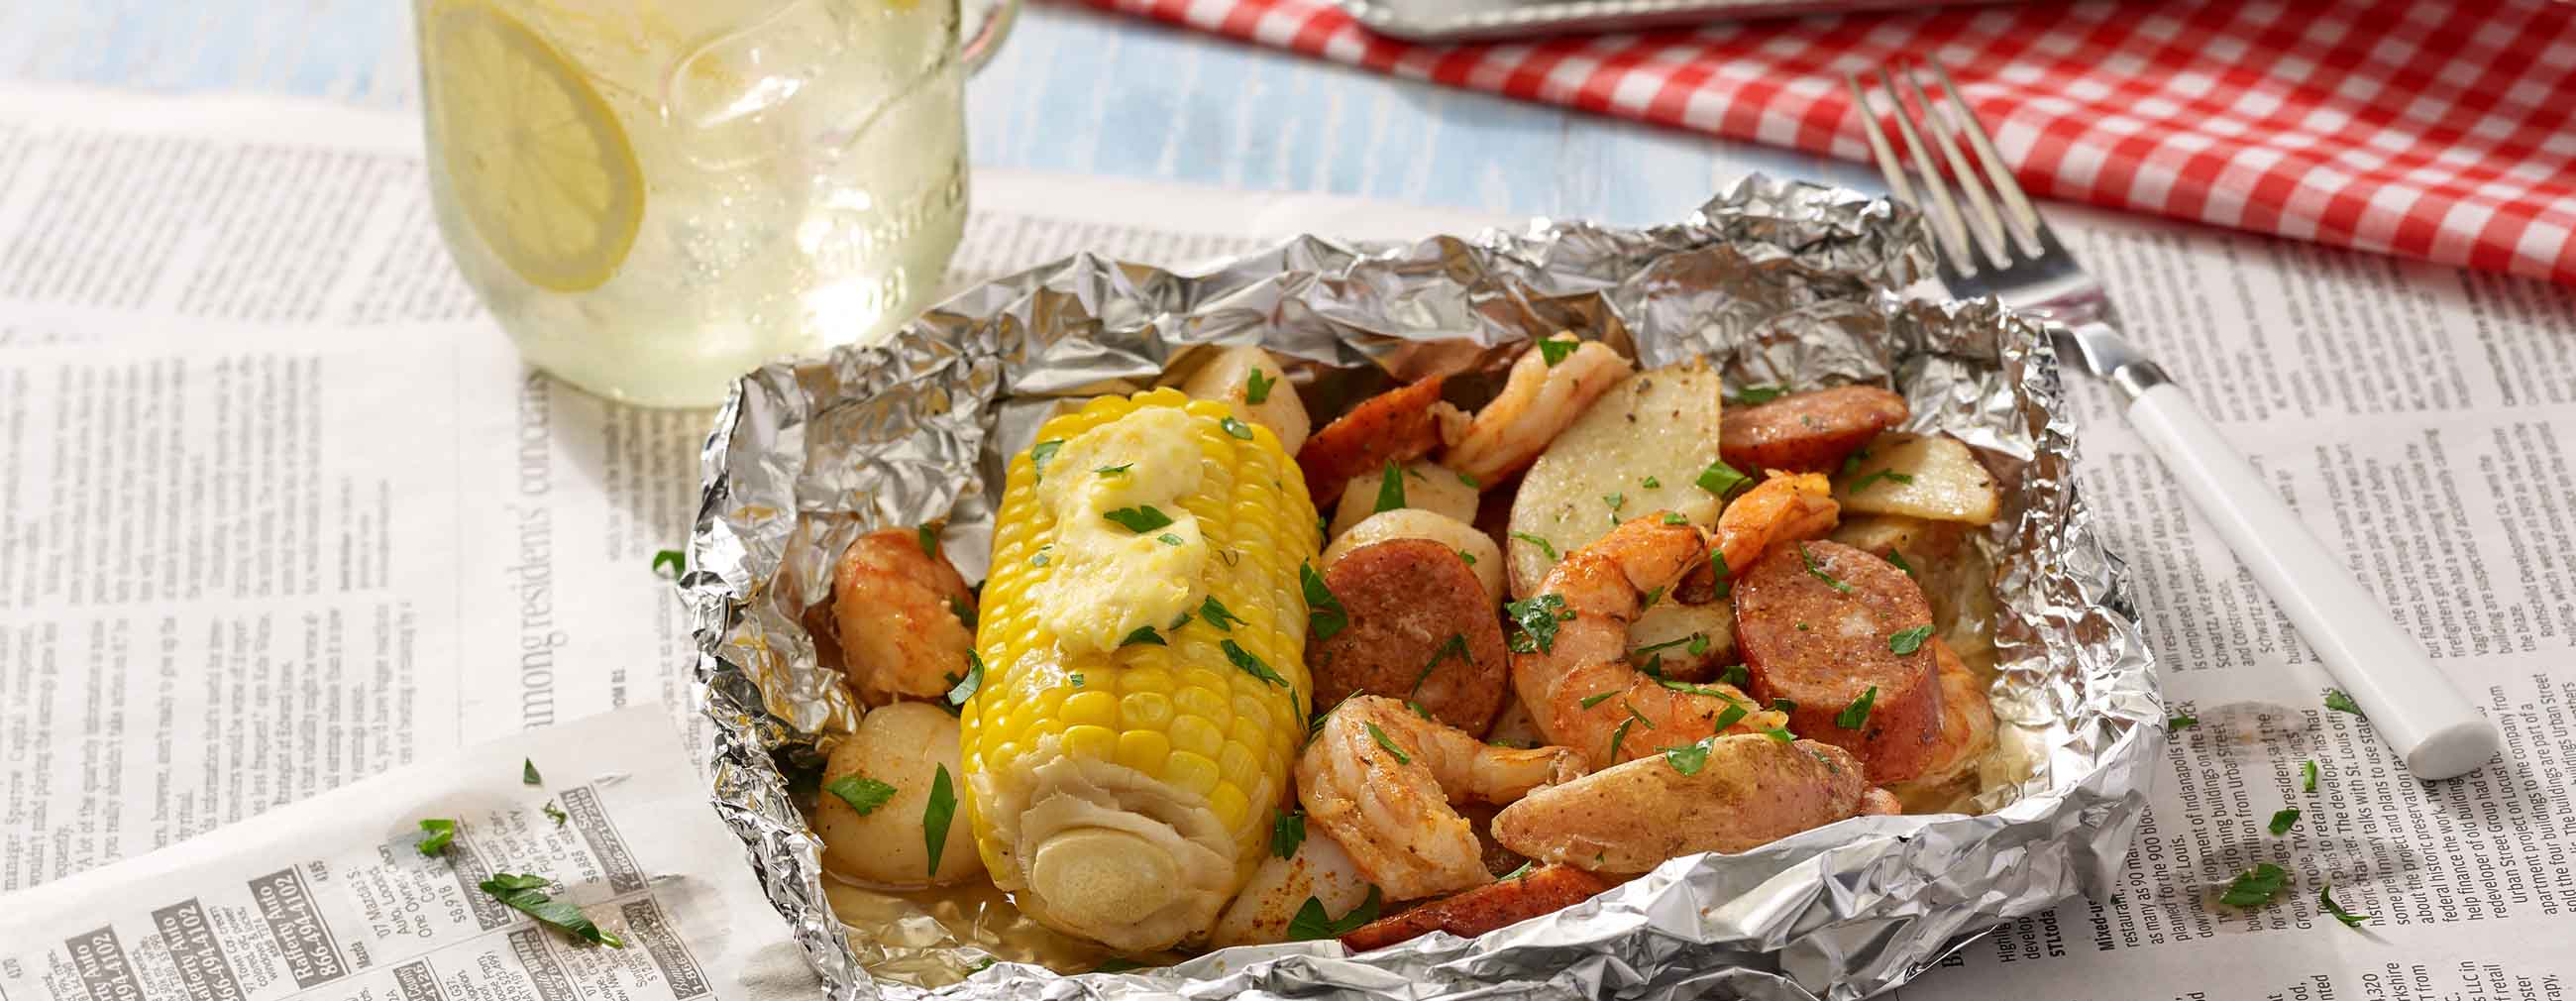 Grilled Seafood Boil Foil Packets